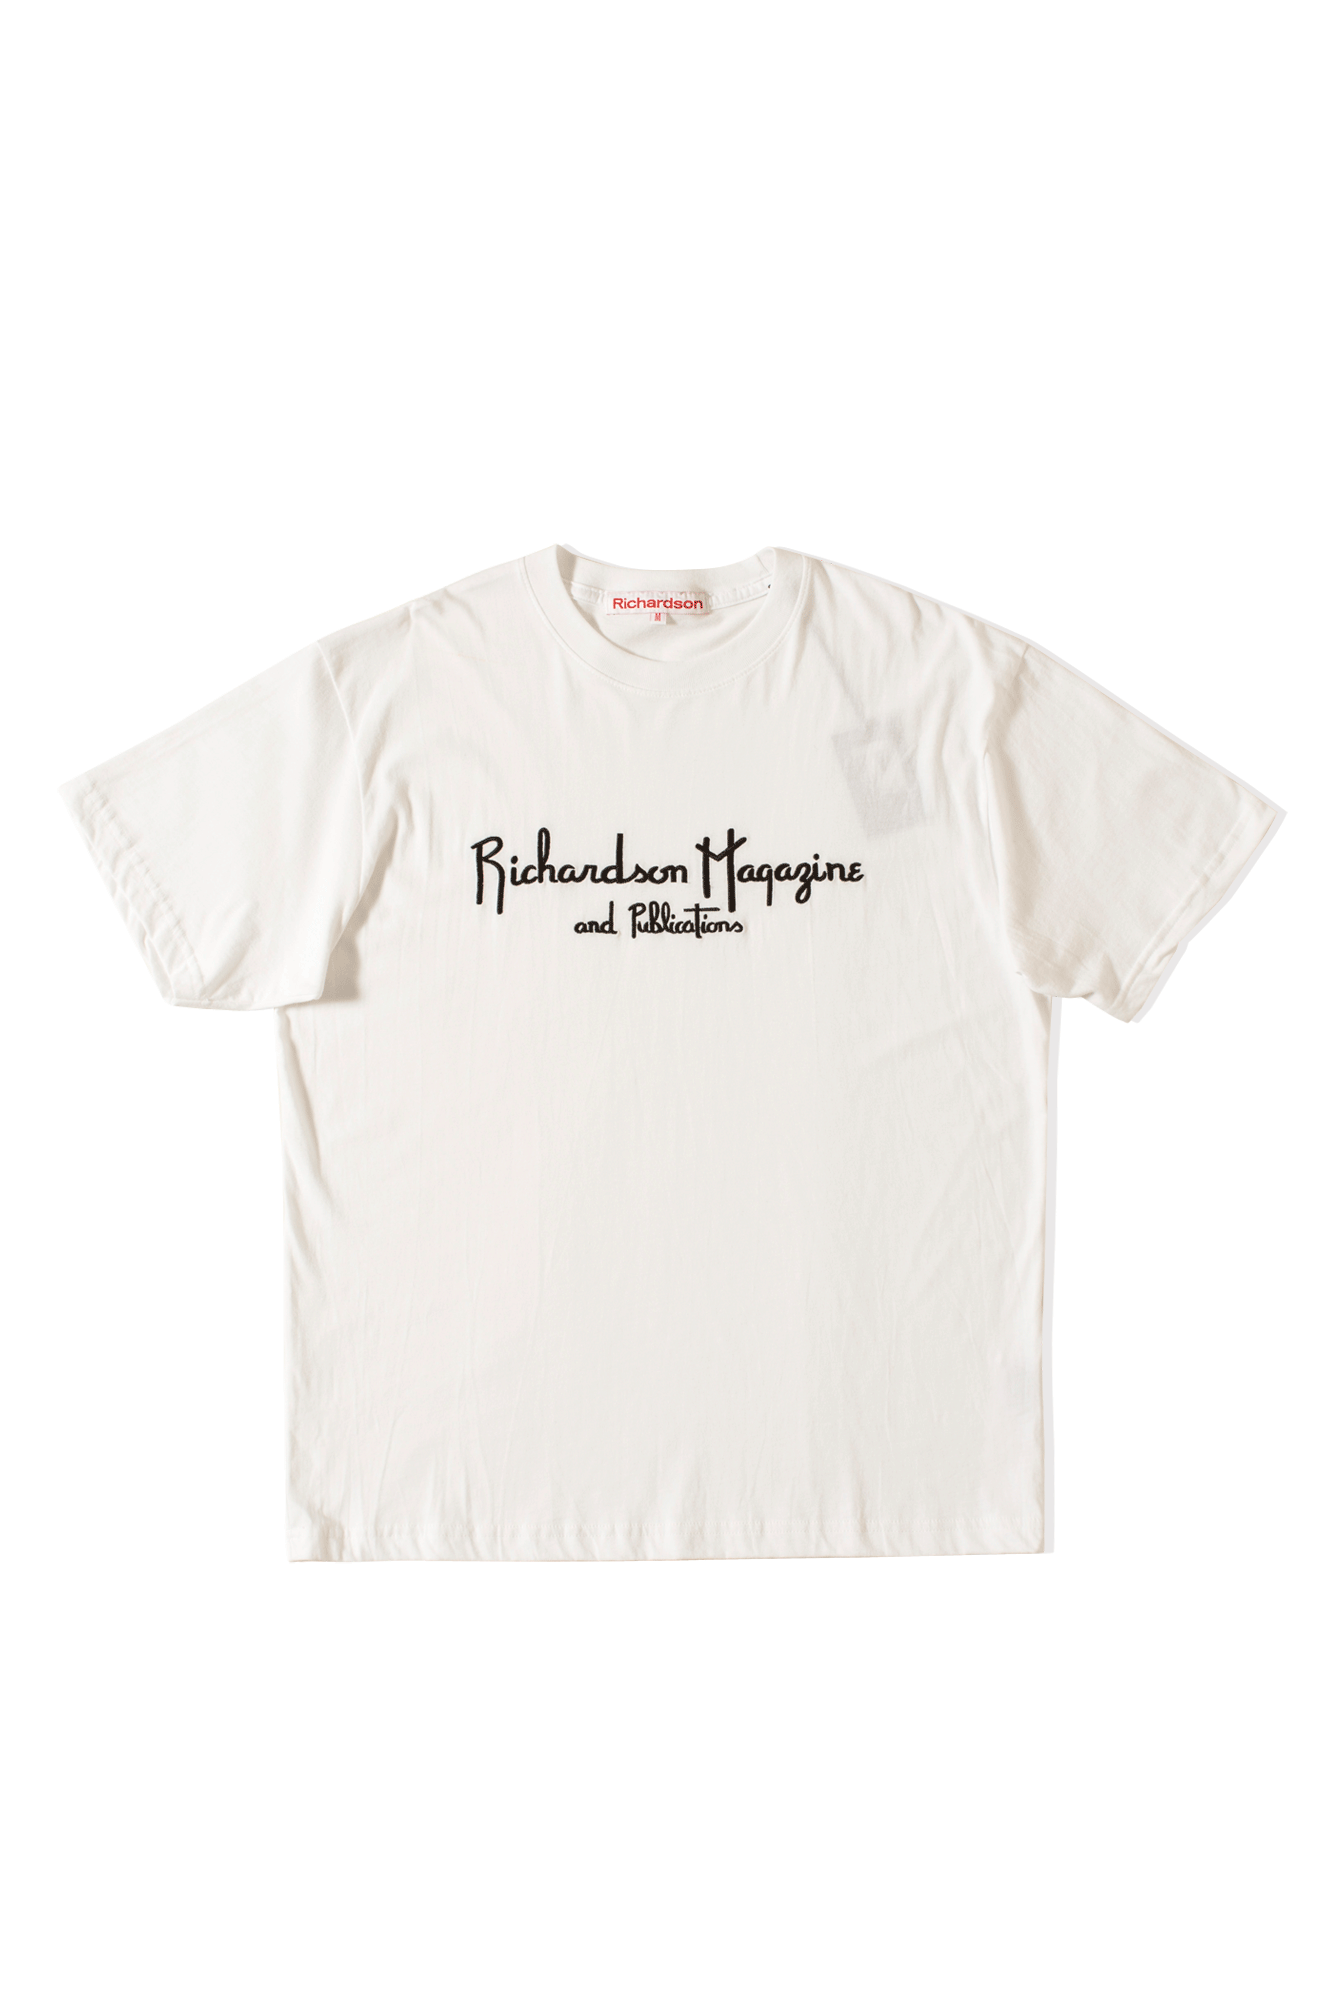 Richardson Magazine T-Shirt White